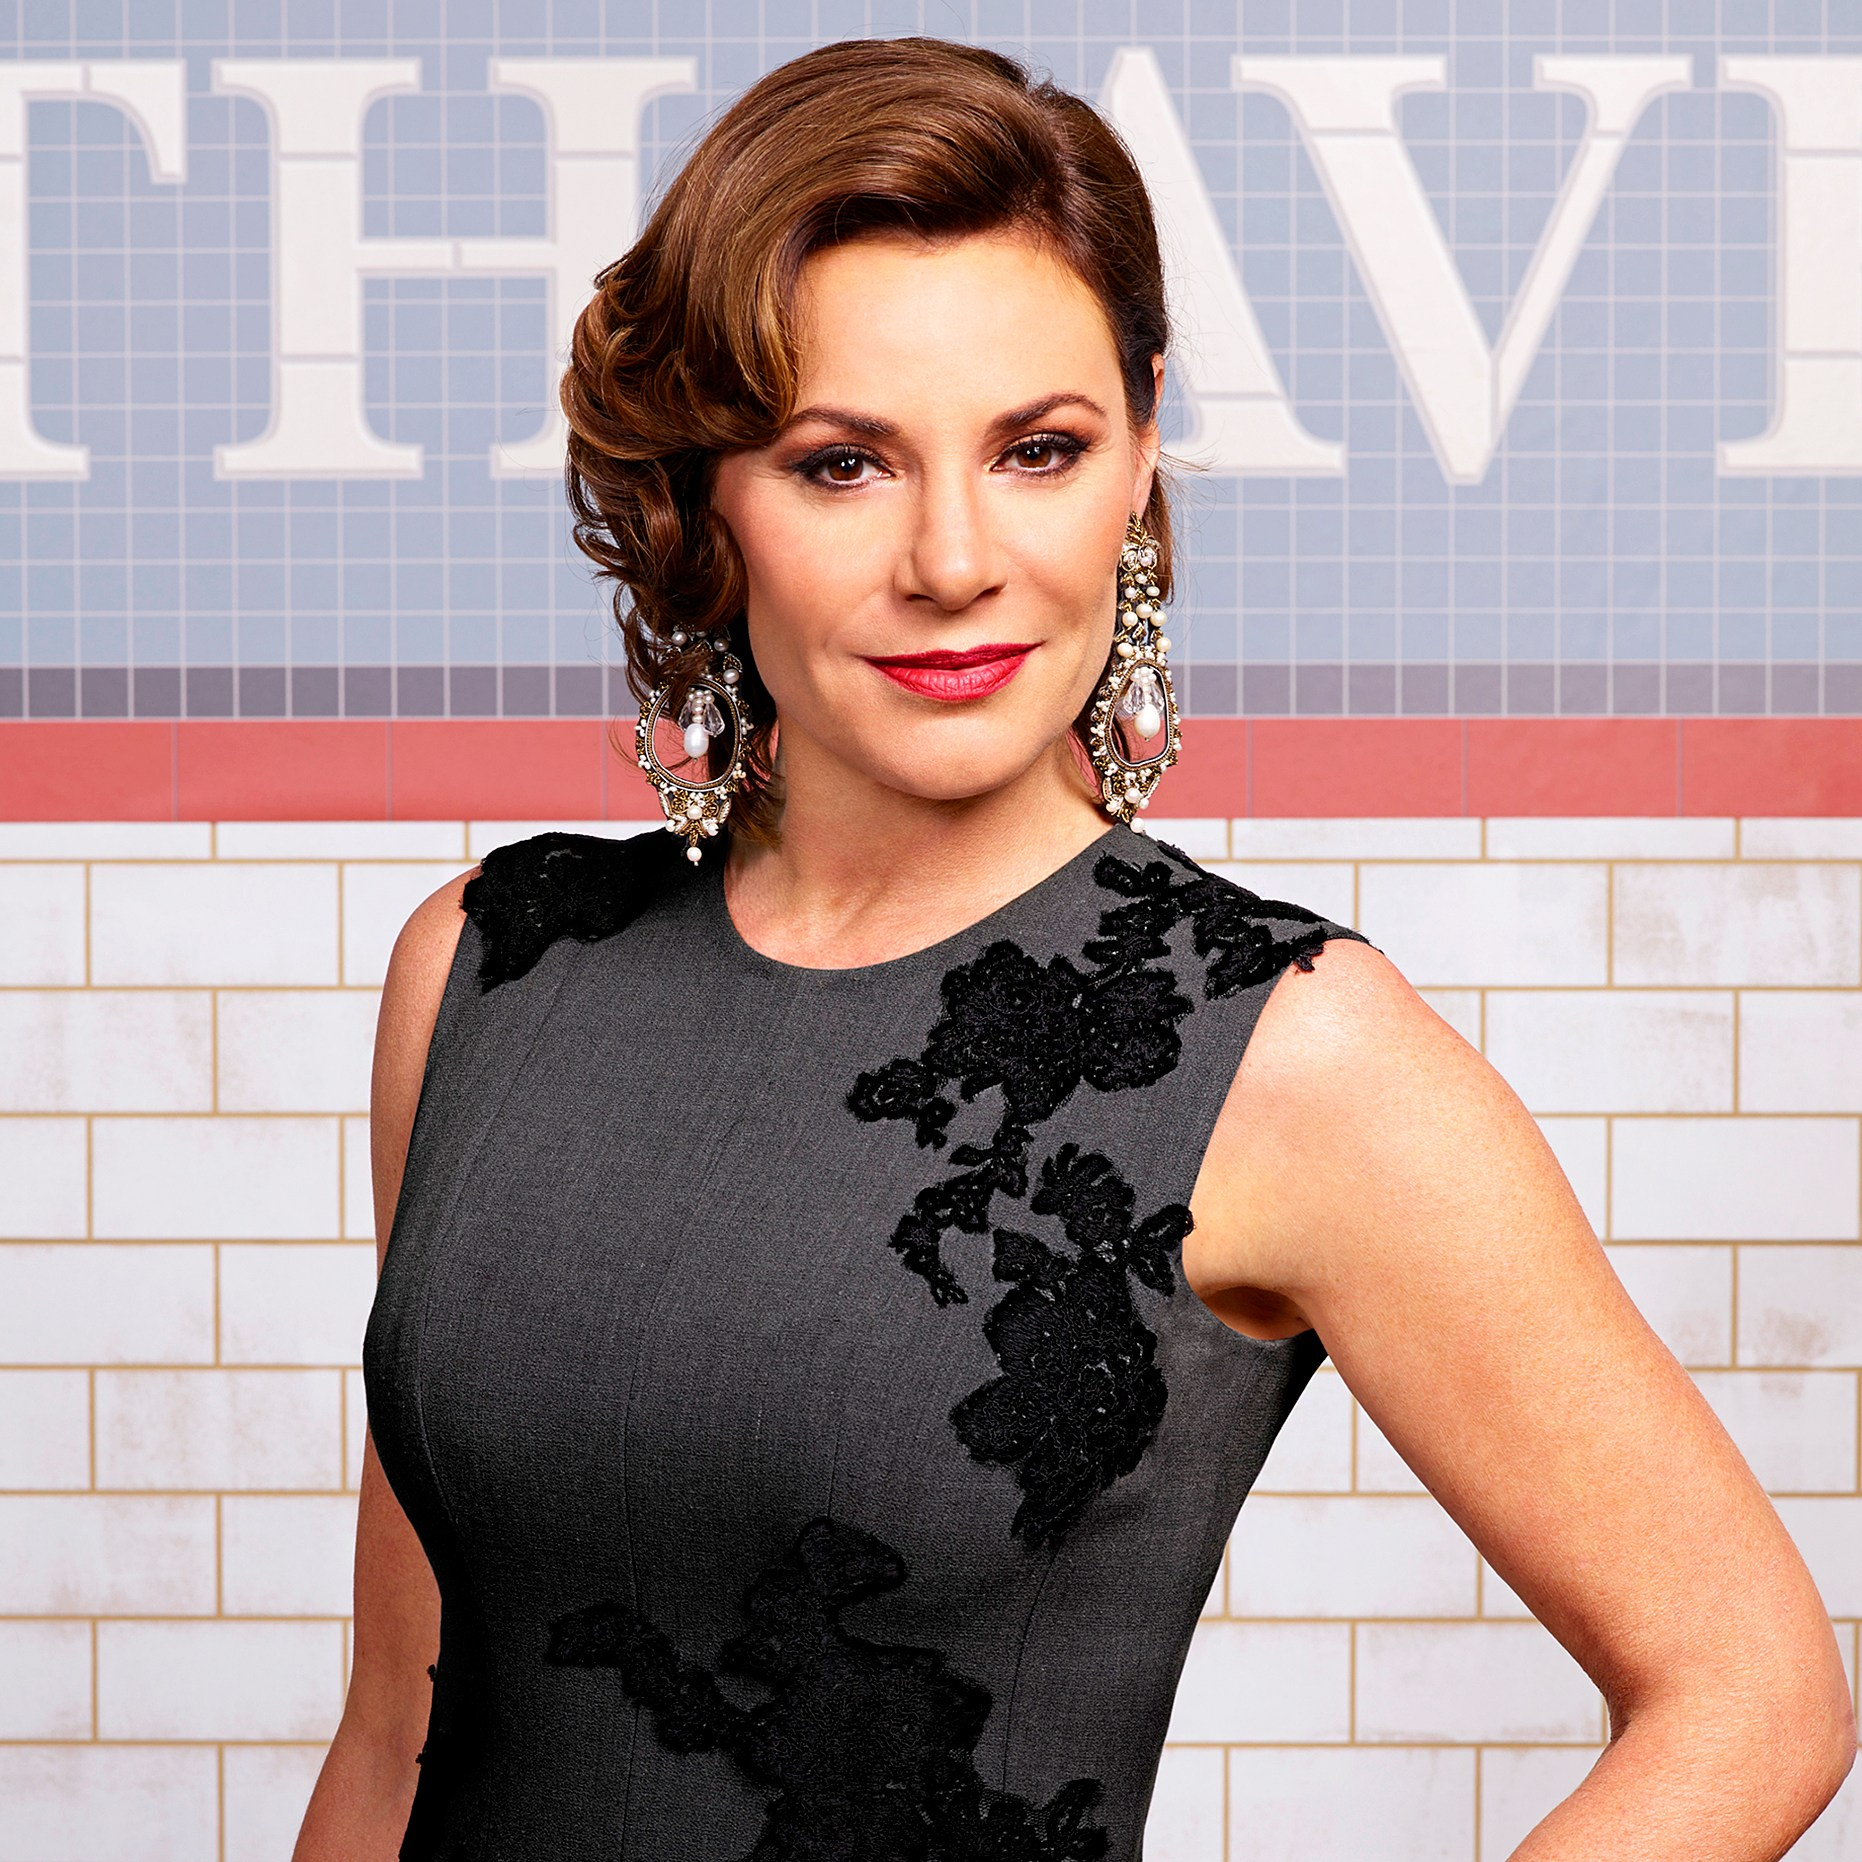 Luann De Lesseps on 'The Real Housewives of New York City'